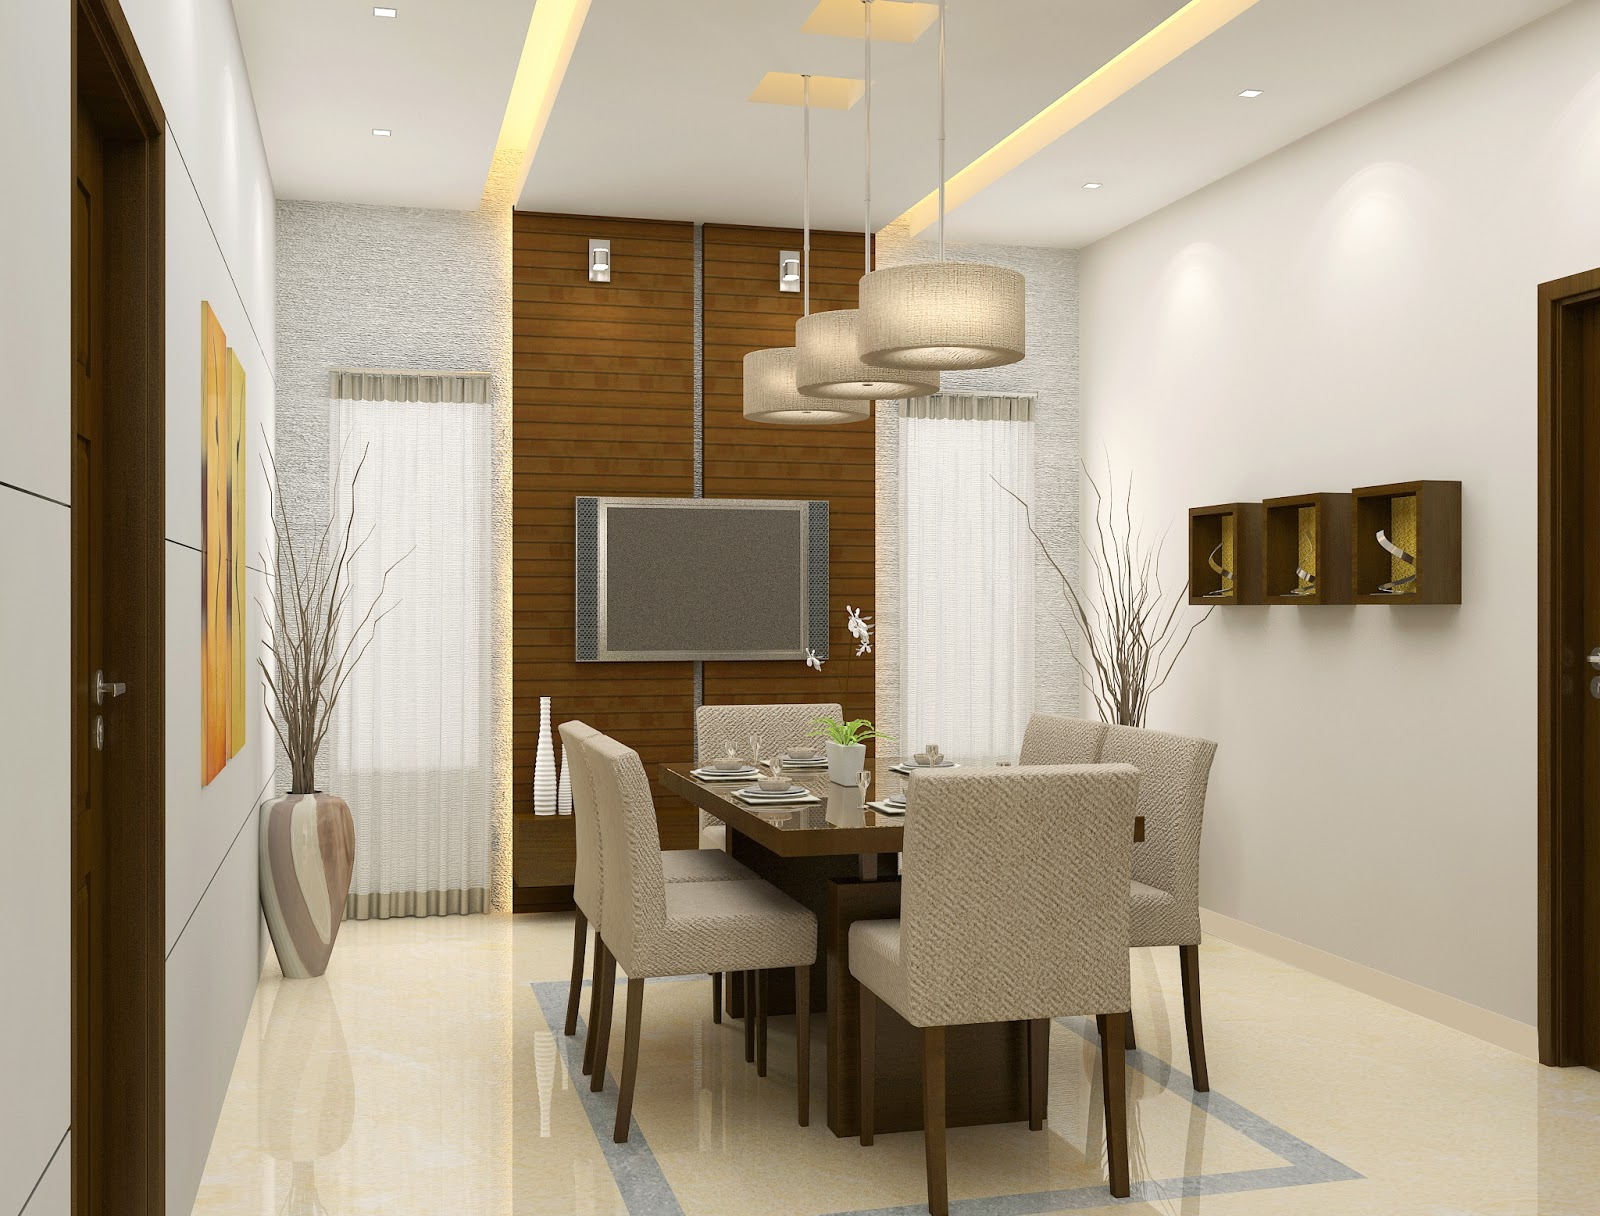 Design For Dining Room Dining Room Interior Design Modern Minimalist Dining Room Interior